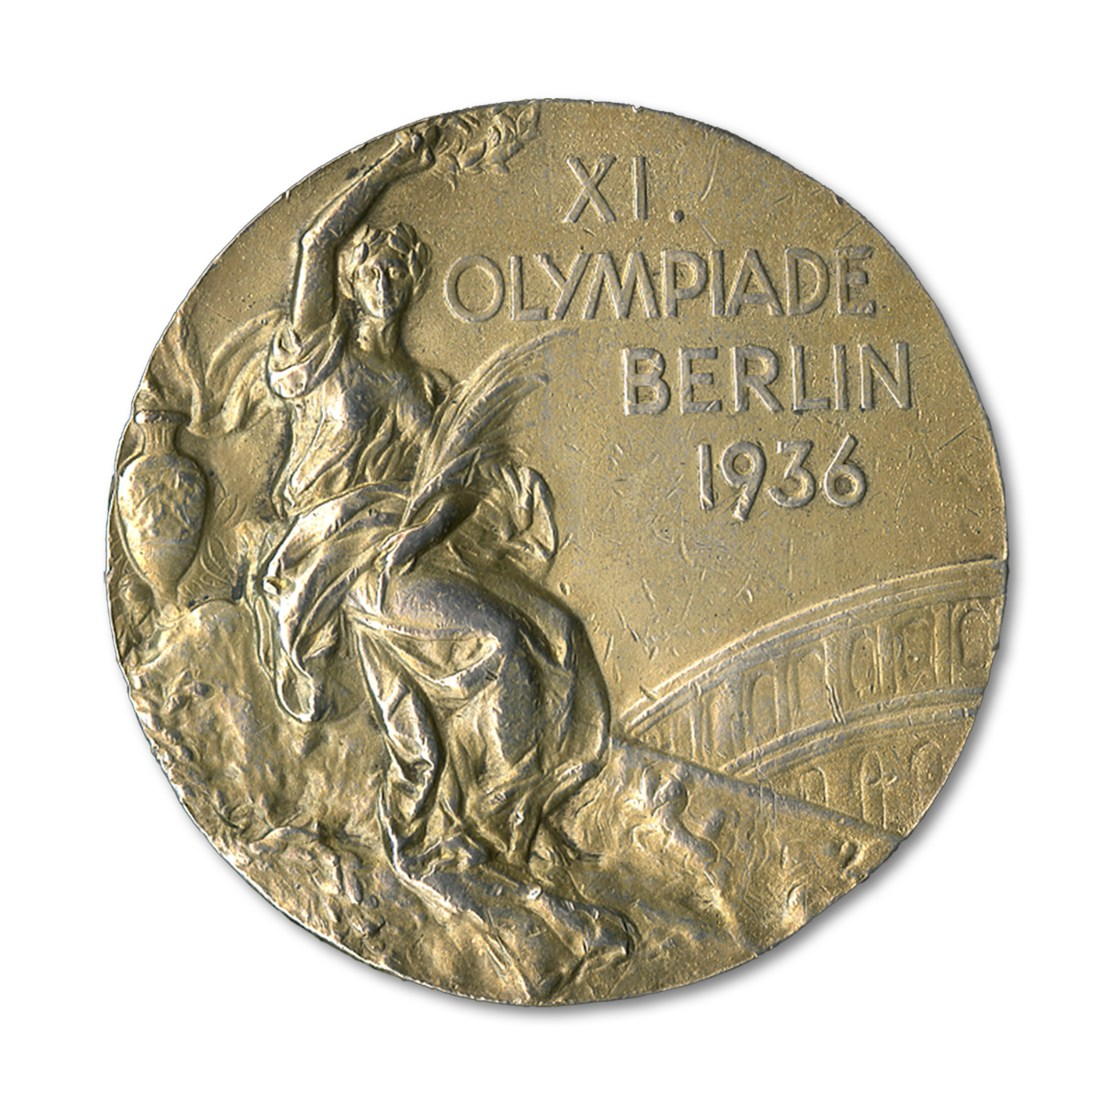 A 1936 Olympic gold medal, one of four earned by Jesse Owens during the Berlin games. SCP Auctions sold it in 2013 for $1.46 million, a world auction record for any piece of Olympic memorabilia.